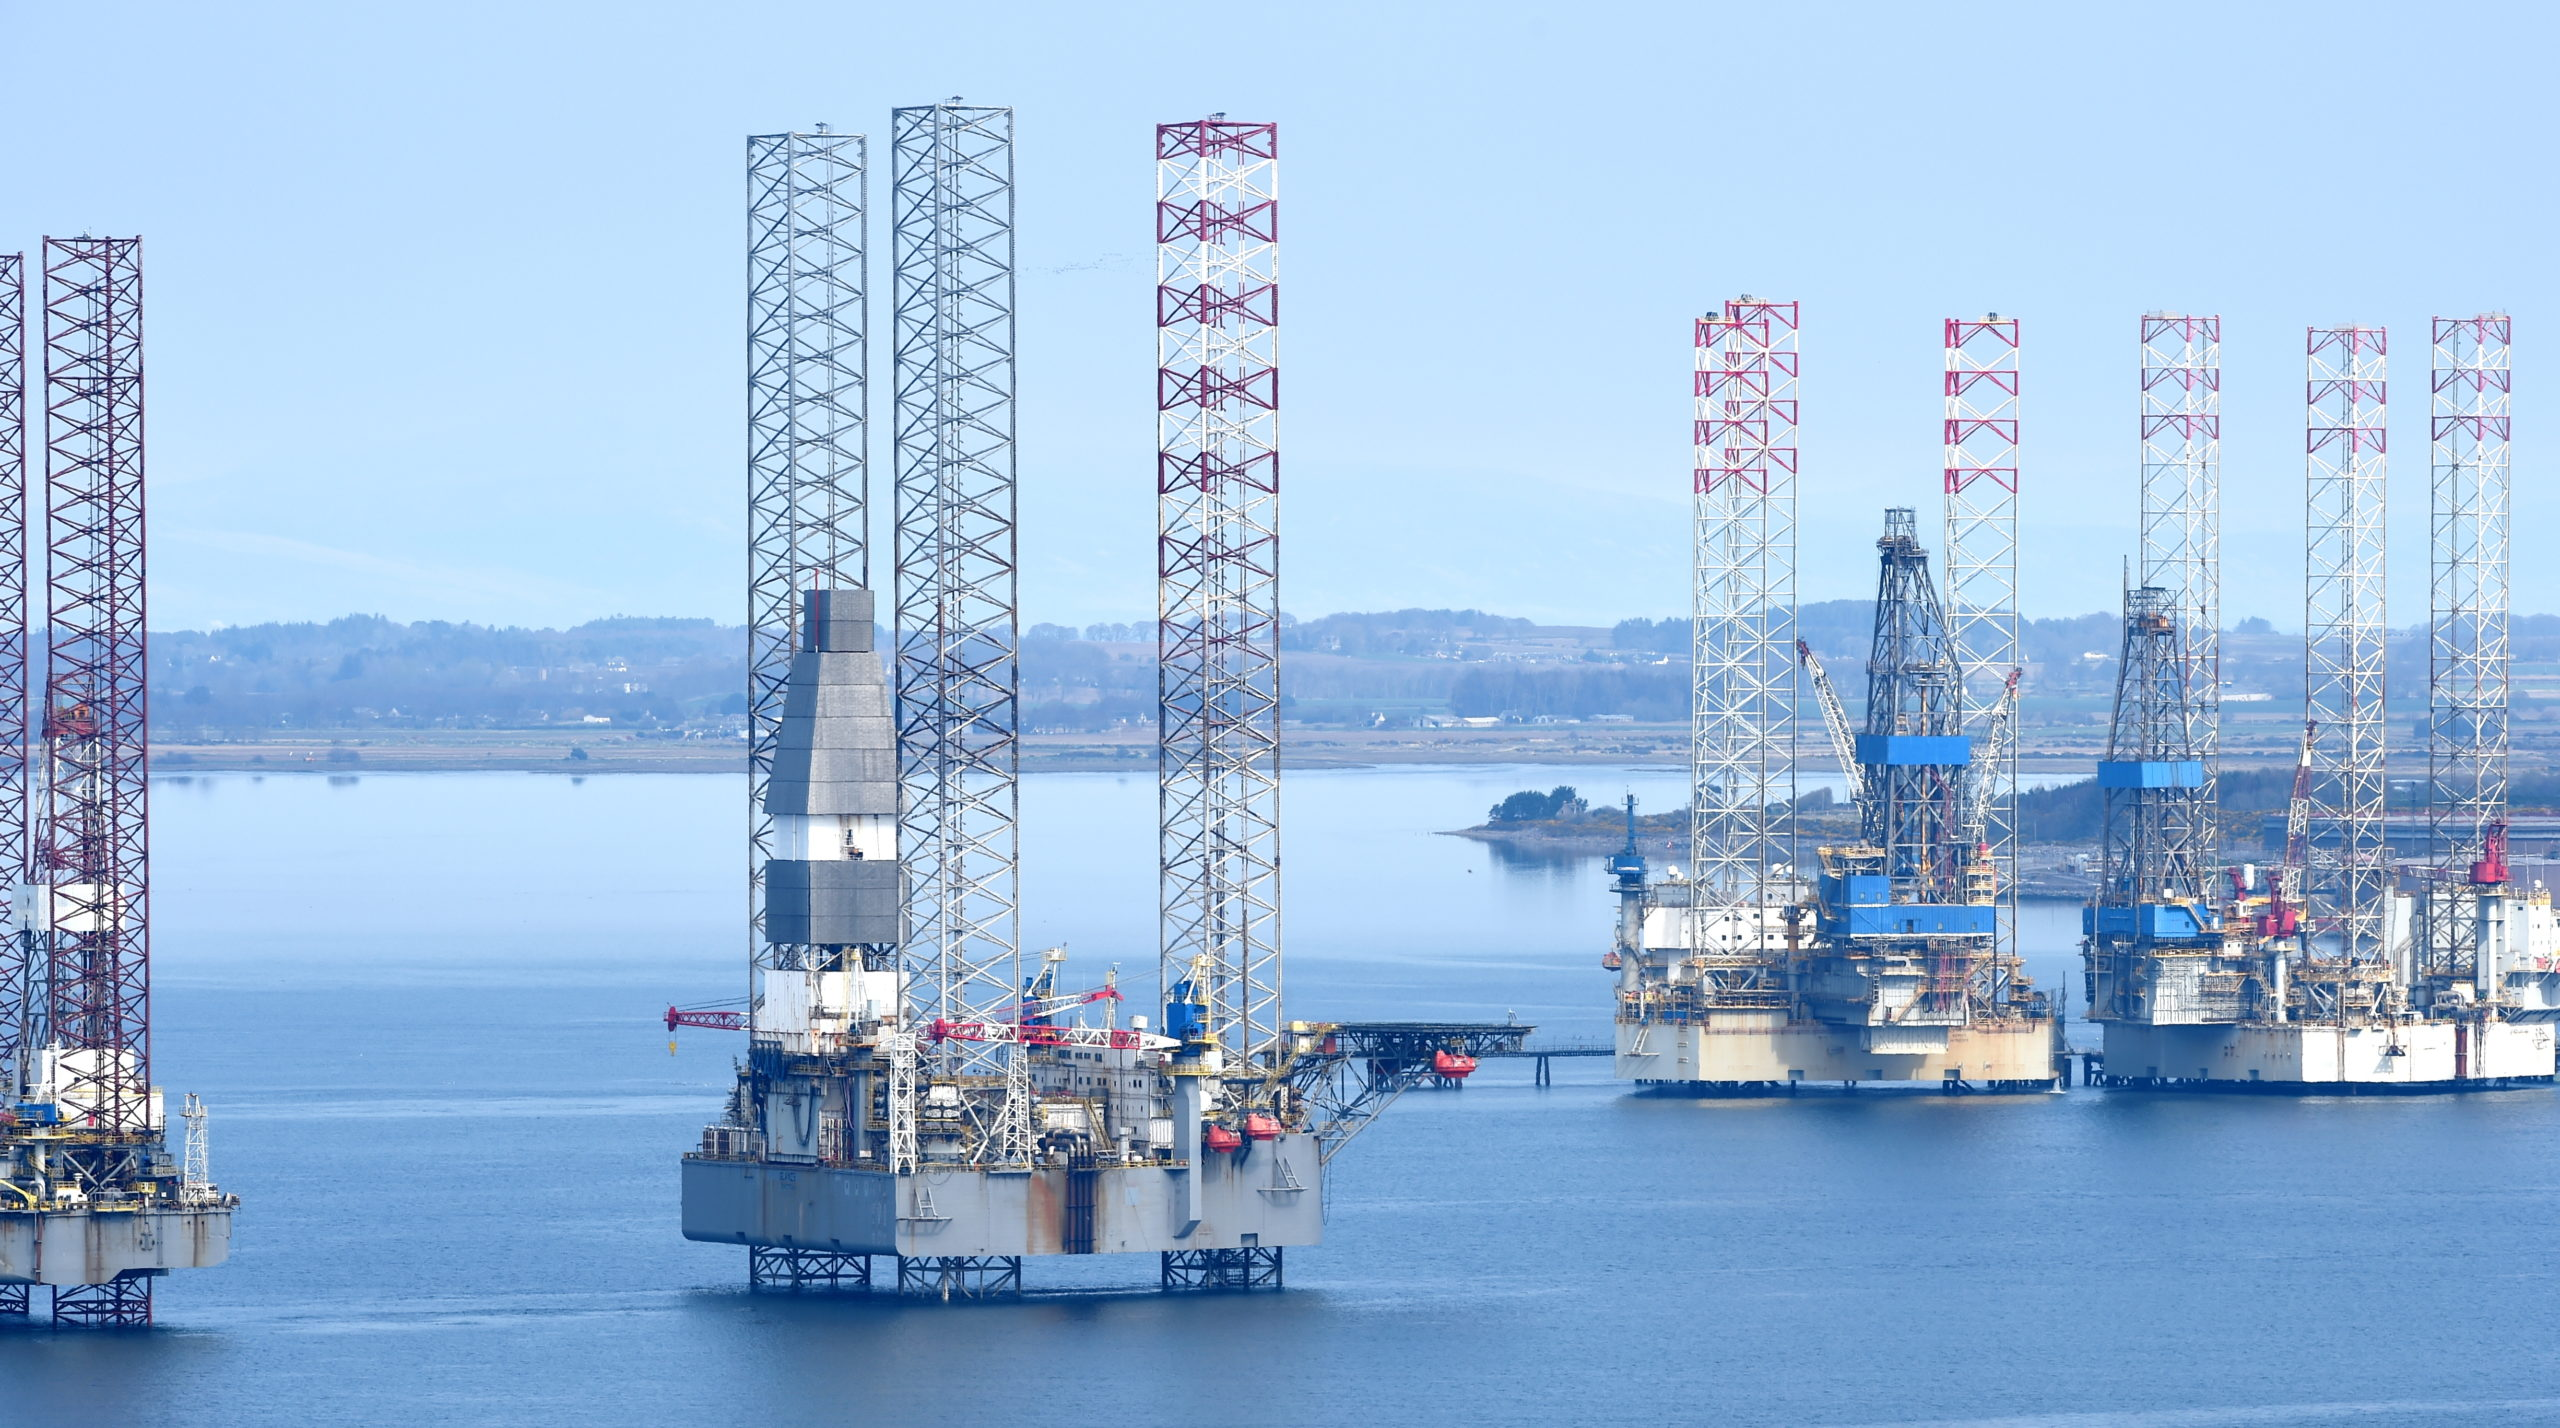 The Cromarty Firth currently hosts 14 rigs, according to local residents